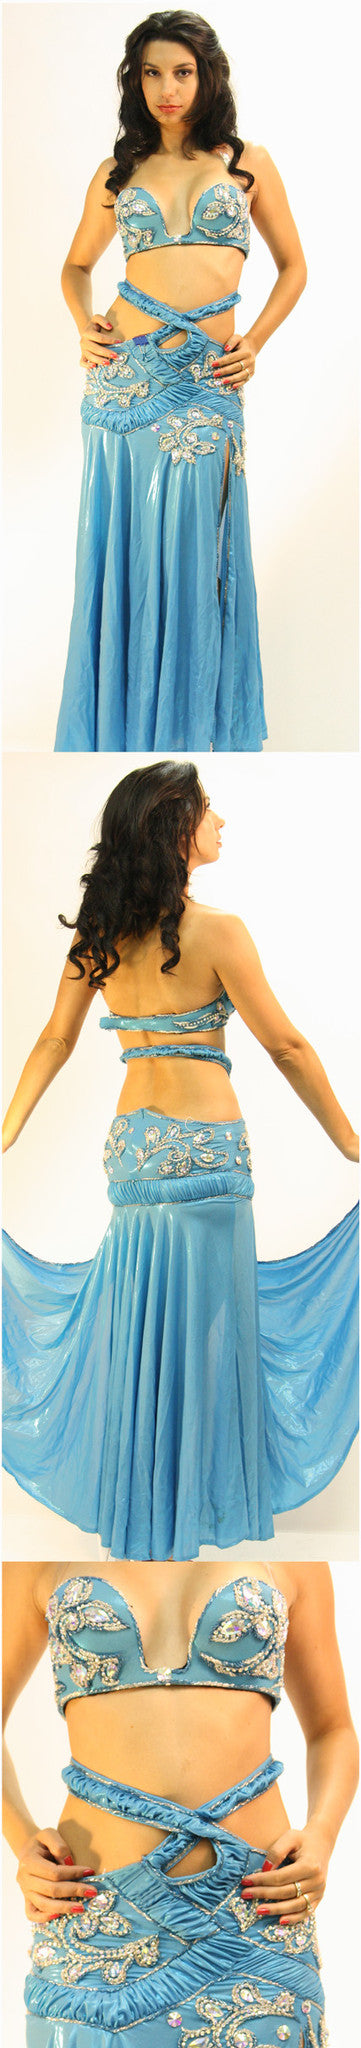 Mumtaz Two-Piece Costume Clearance